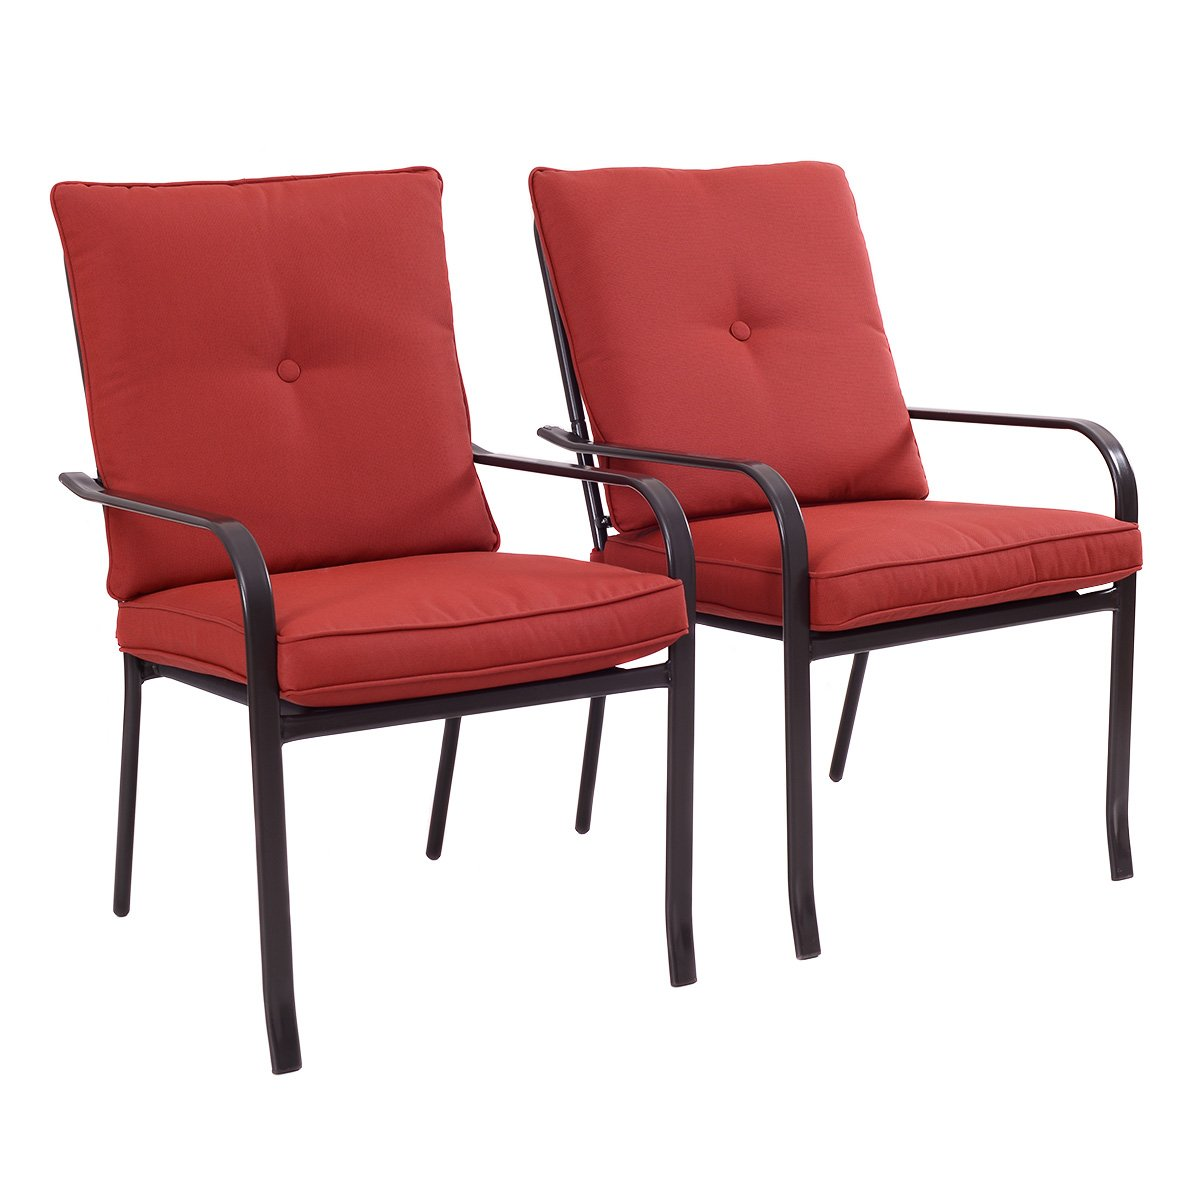 Giantex Set of 2 Patio Garden Chairs Steel Frame Outdoor Furniture Dining w/Red Cushion(Set of 2 Chairs)